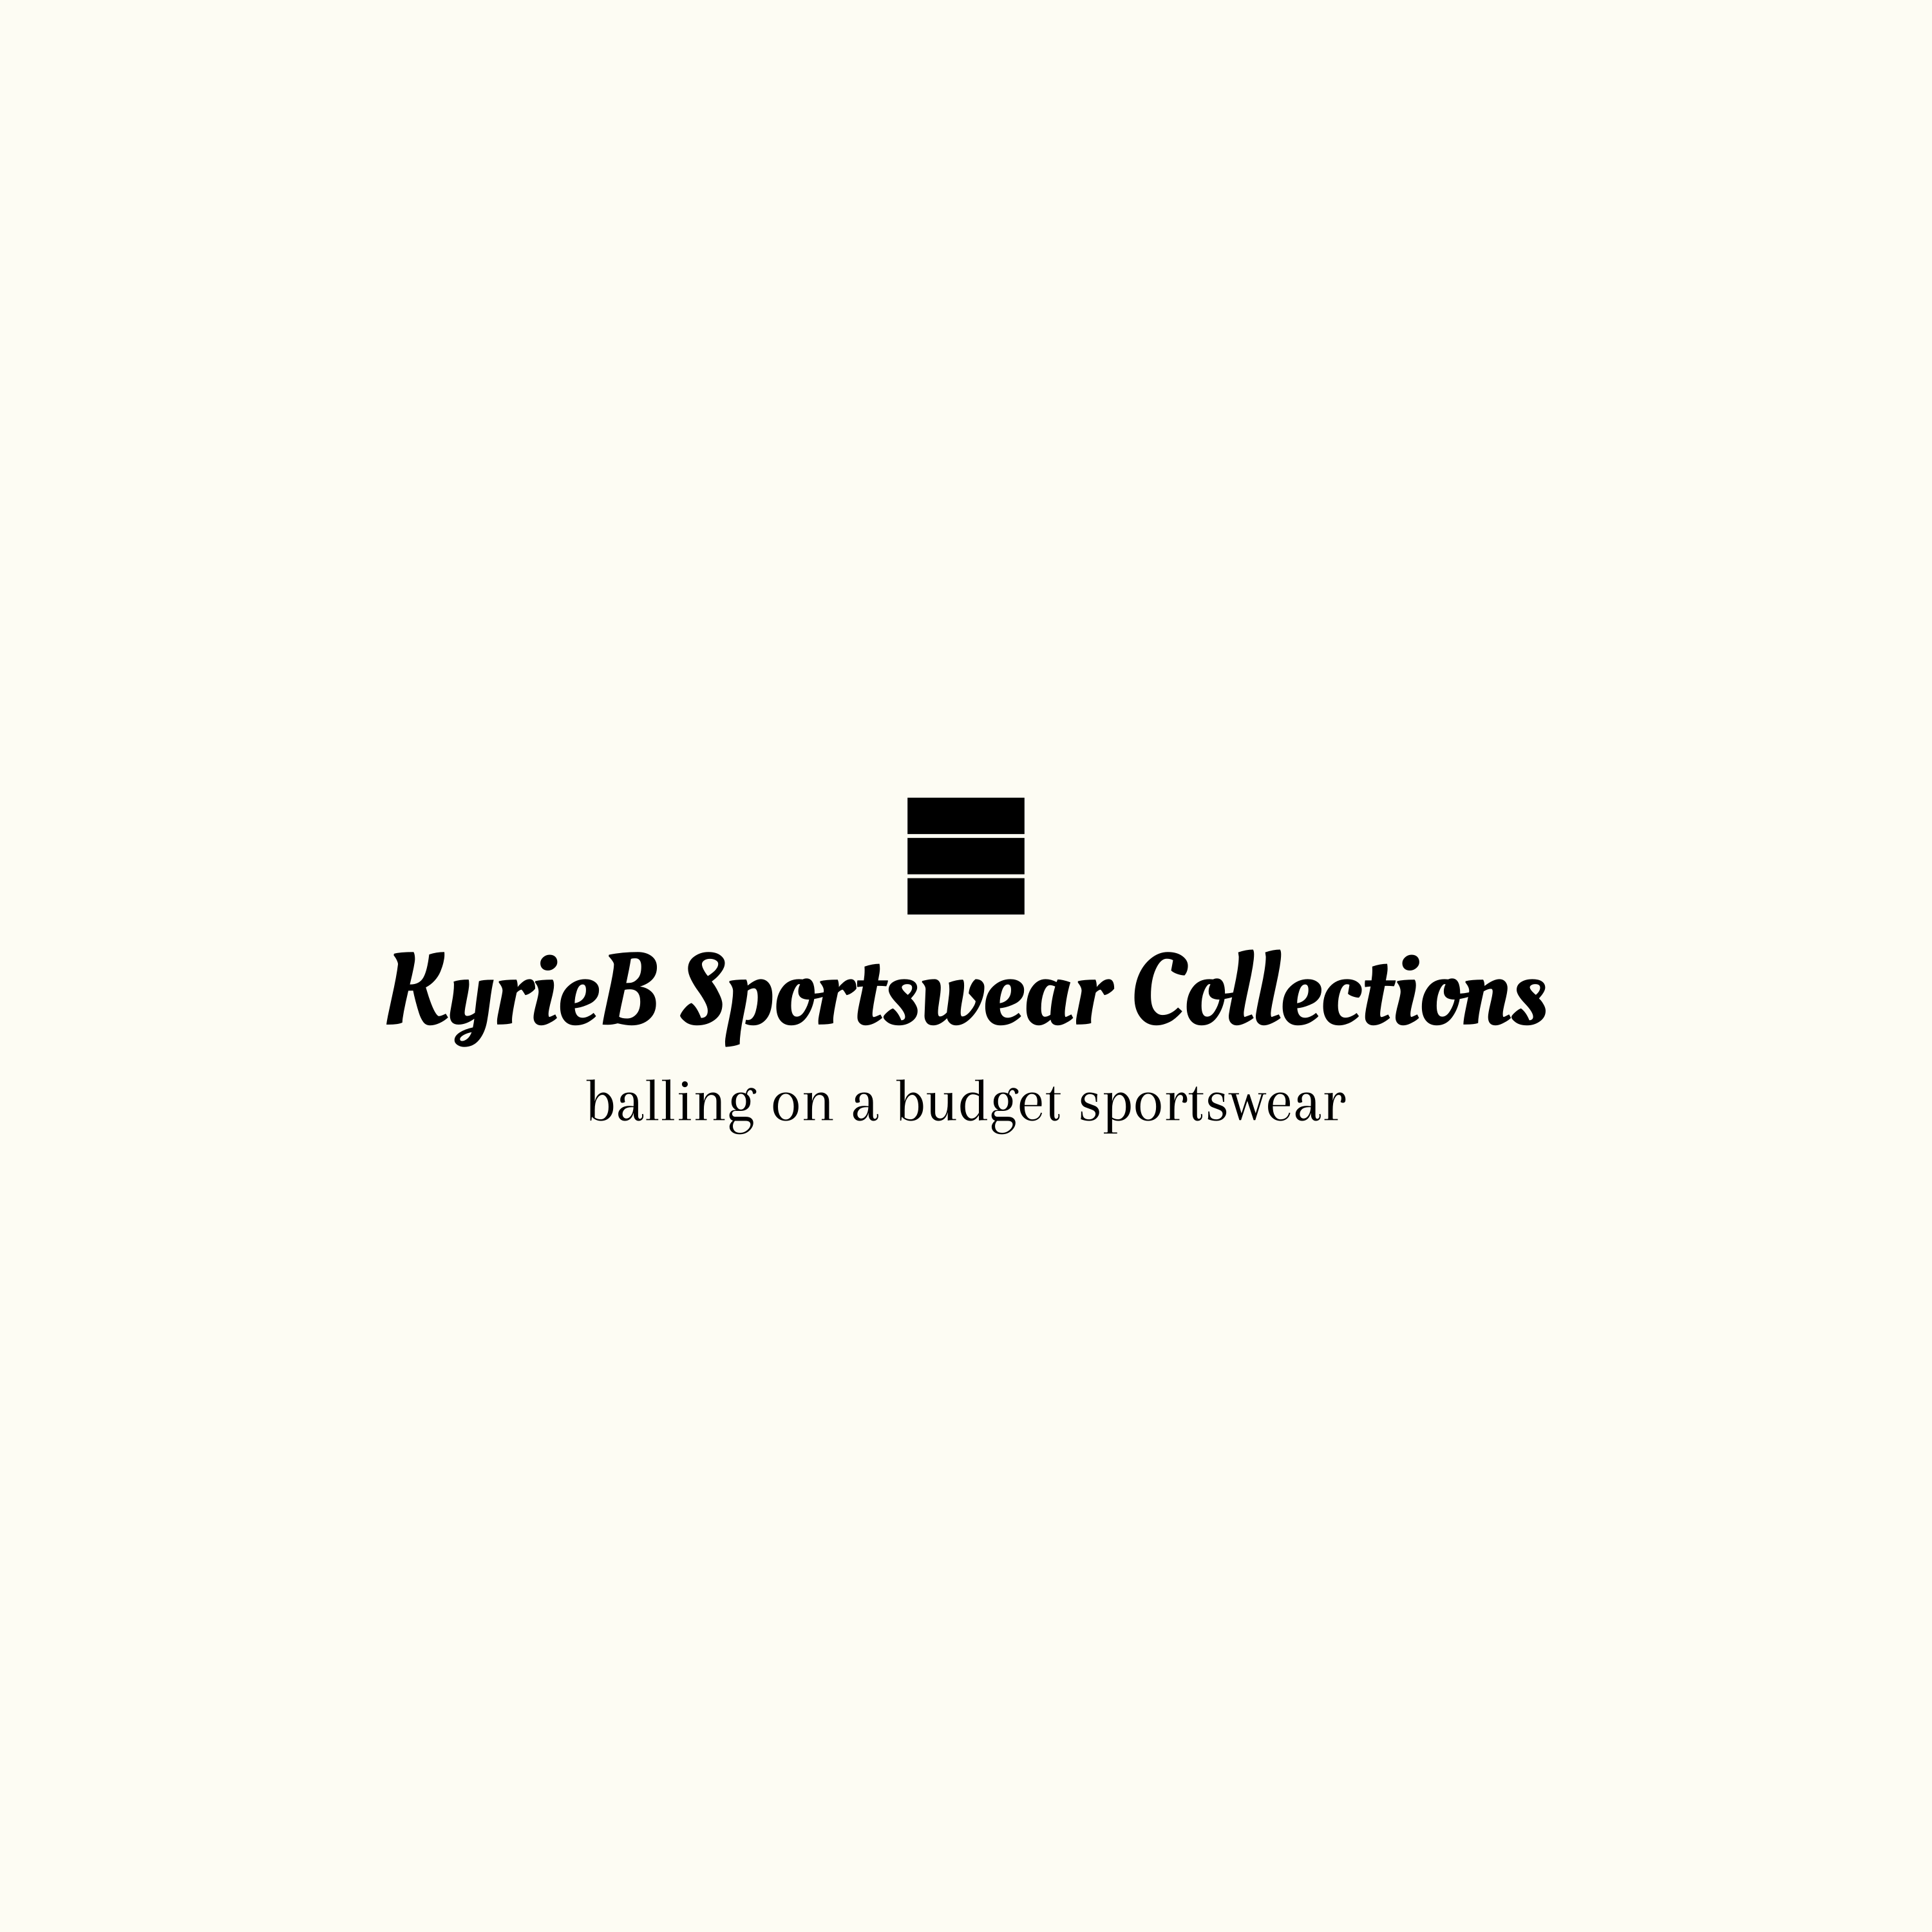 KyrieB Sportswear Collections